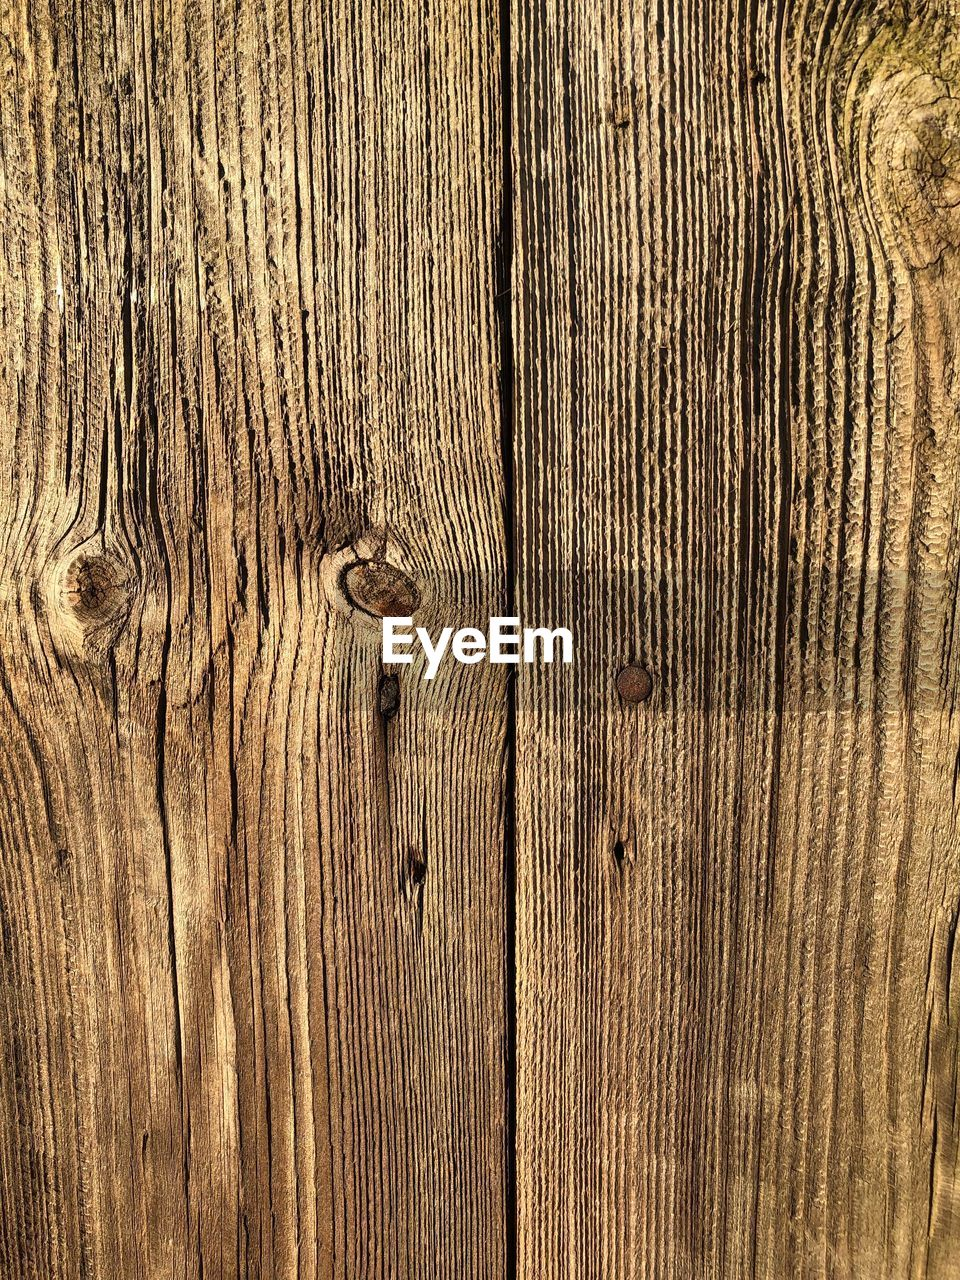 wood - material, backgrounds, textured, pattern, wood grain, full frame, brown, no people, close-up, timber, knotted wood, nature, outdoors, day, hardwood, wood paneling